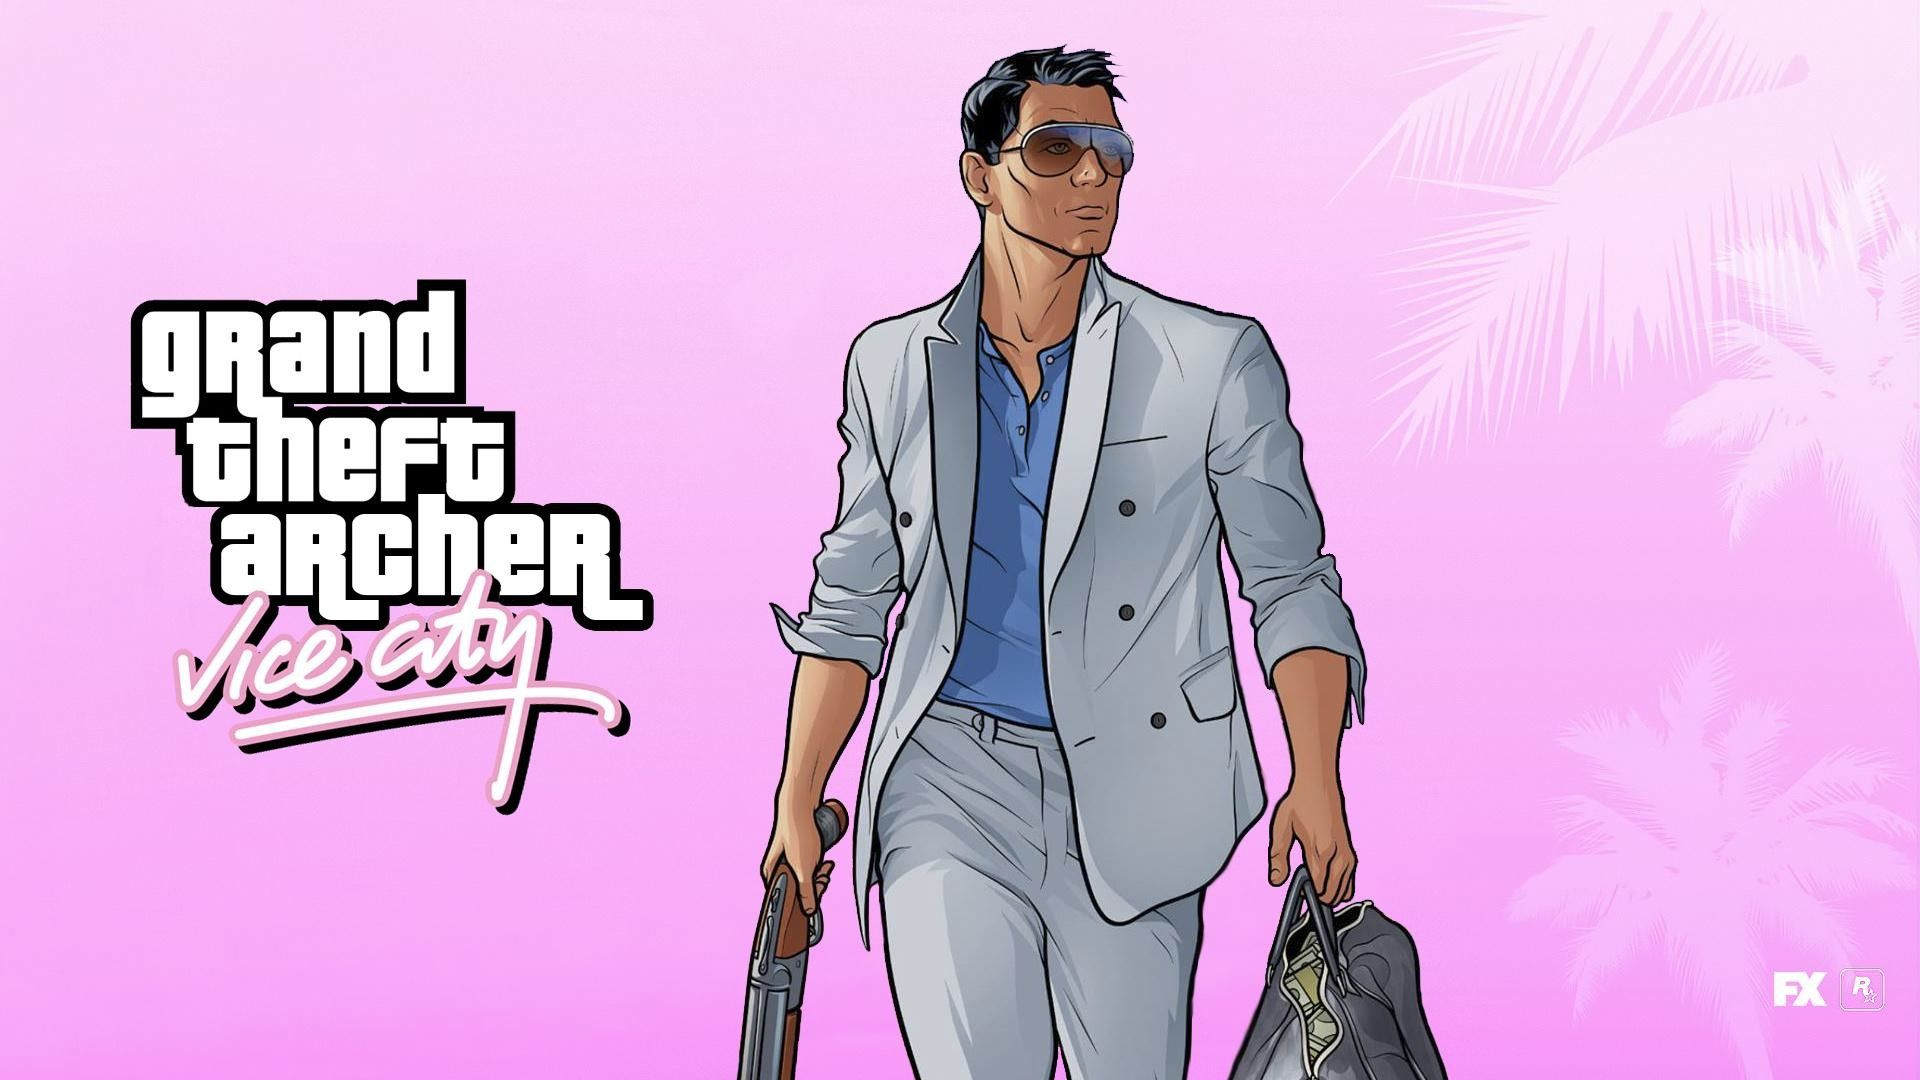 Gta Vice City Wallpapers 67 Images In 2020 Gta City Wallpaper Whatsapp Dp Images